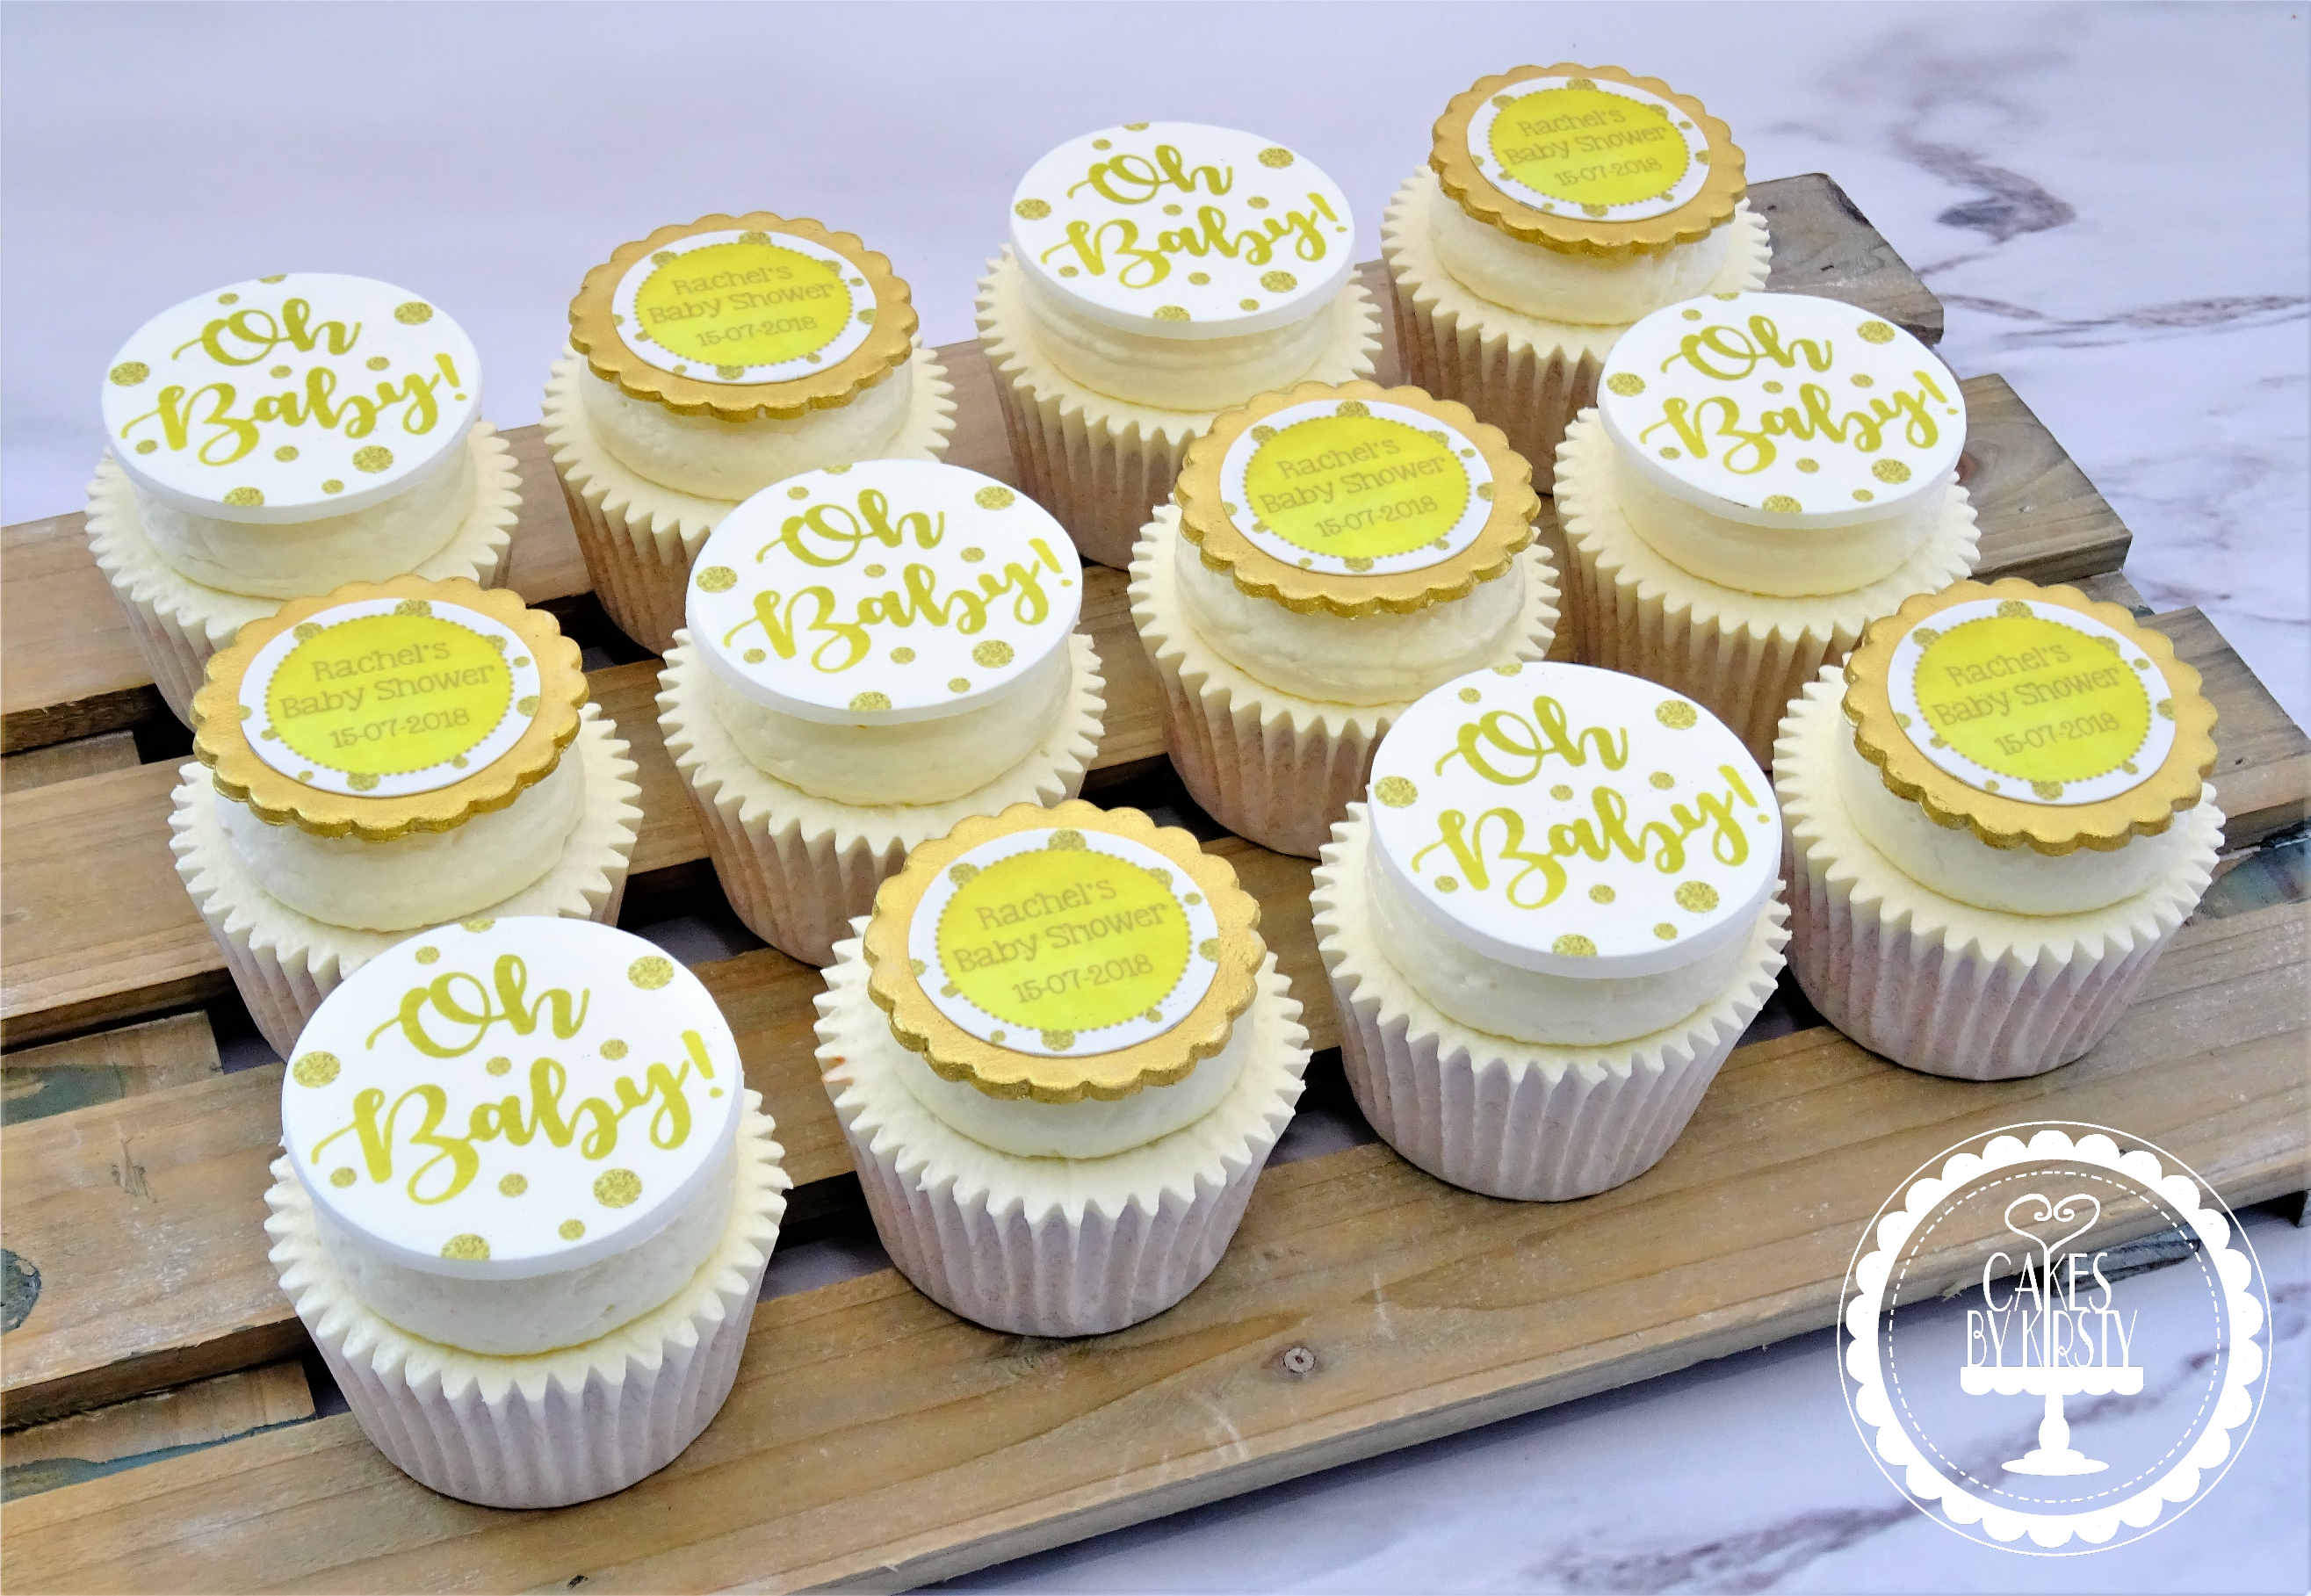 _Oh Baby_ Baby Shower Cupcakes